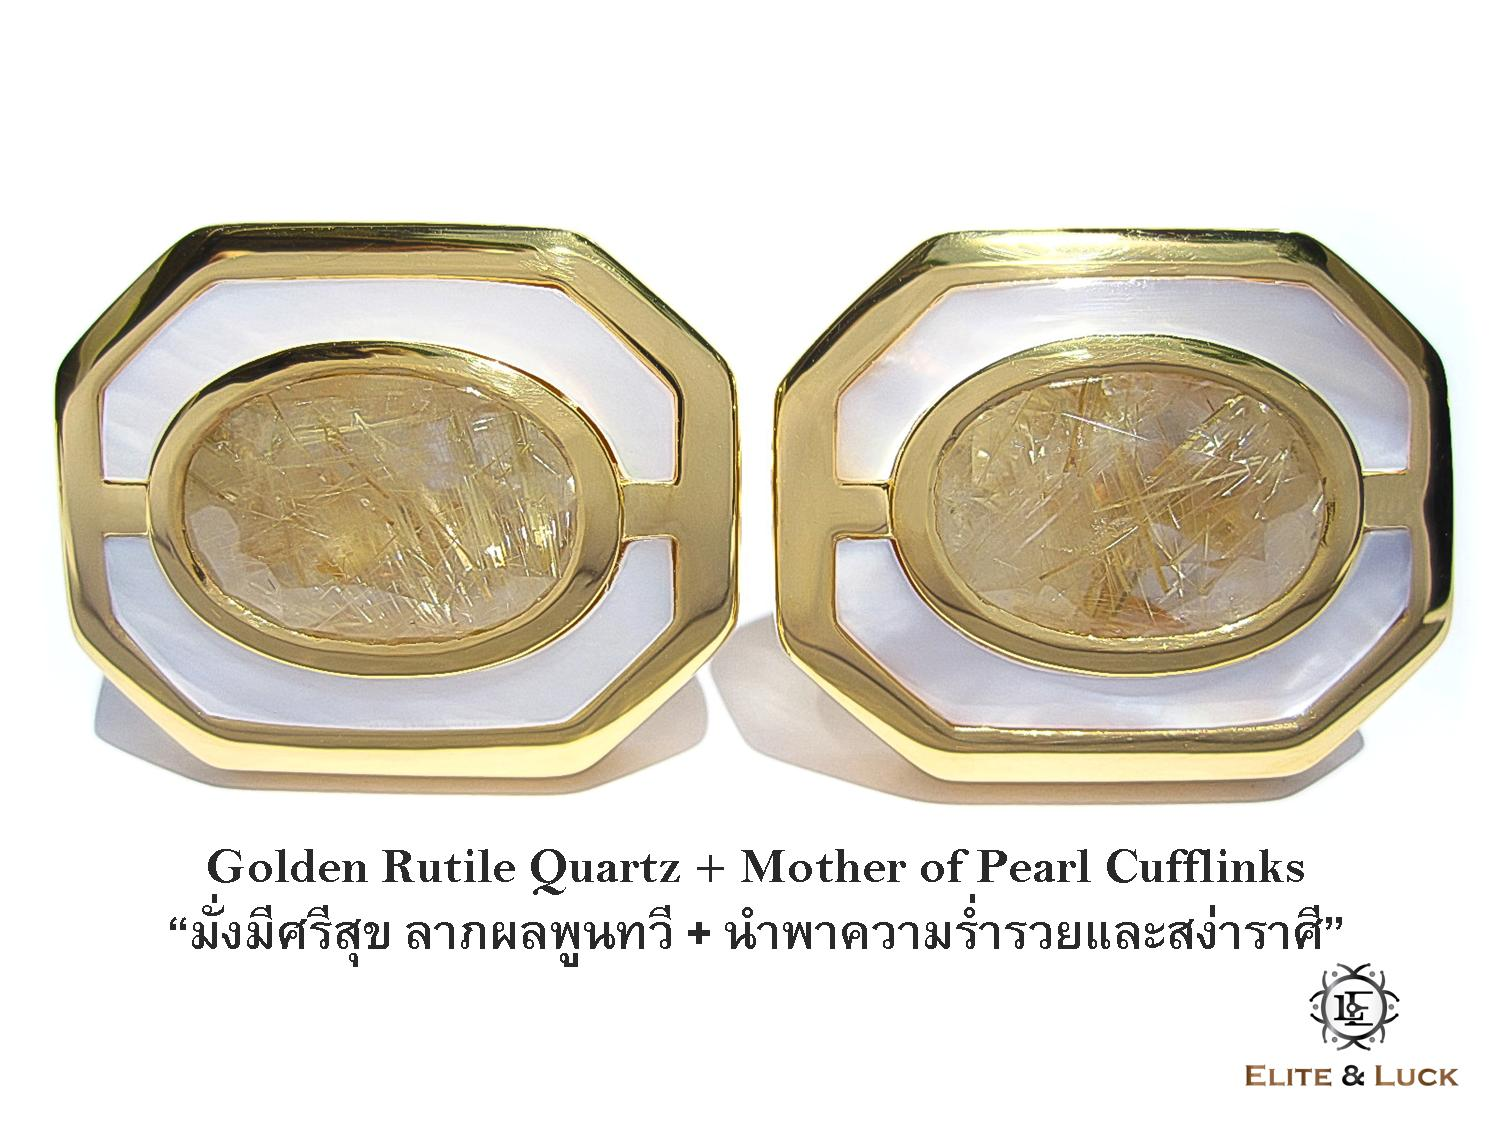 Golden Rutile Quartz + Mother of Pearl Sterling Silver Cufflinks สี 18K Yellow Gold รุ่น Charming